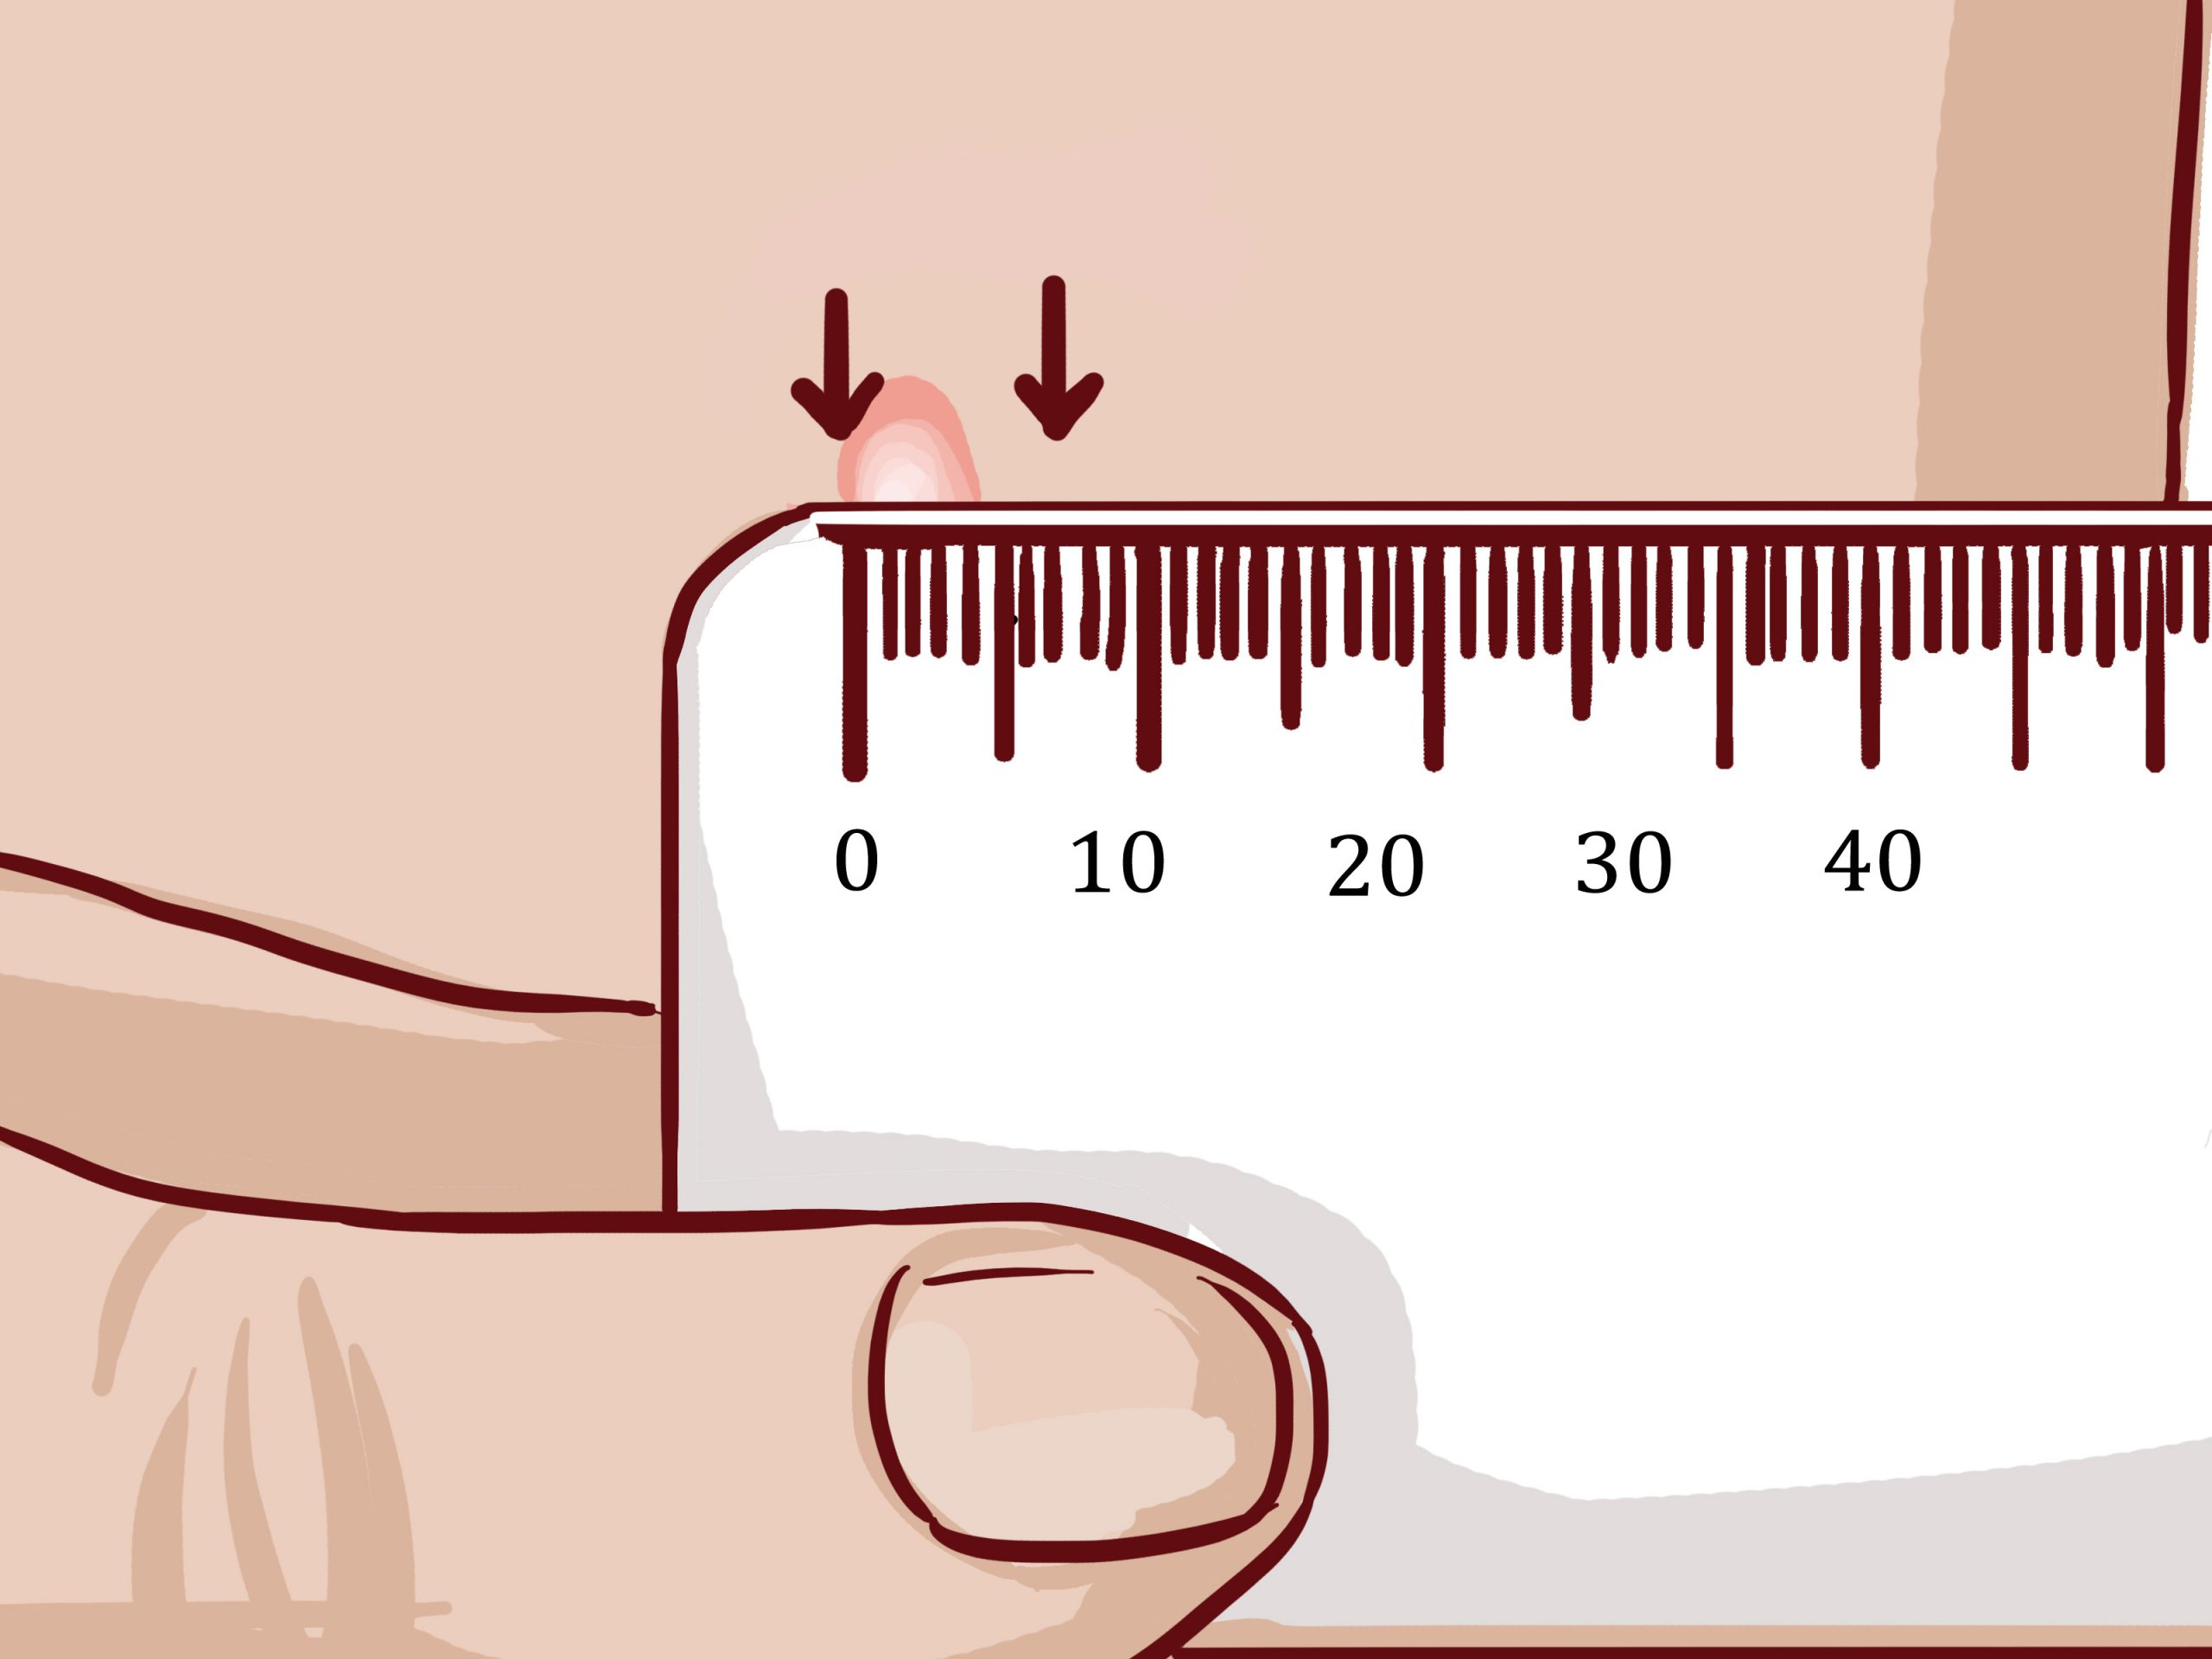 How To Read A Tuberculosis Skin Test: 9 Steps (With Pictures)